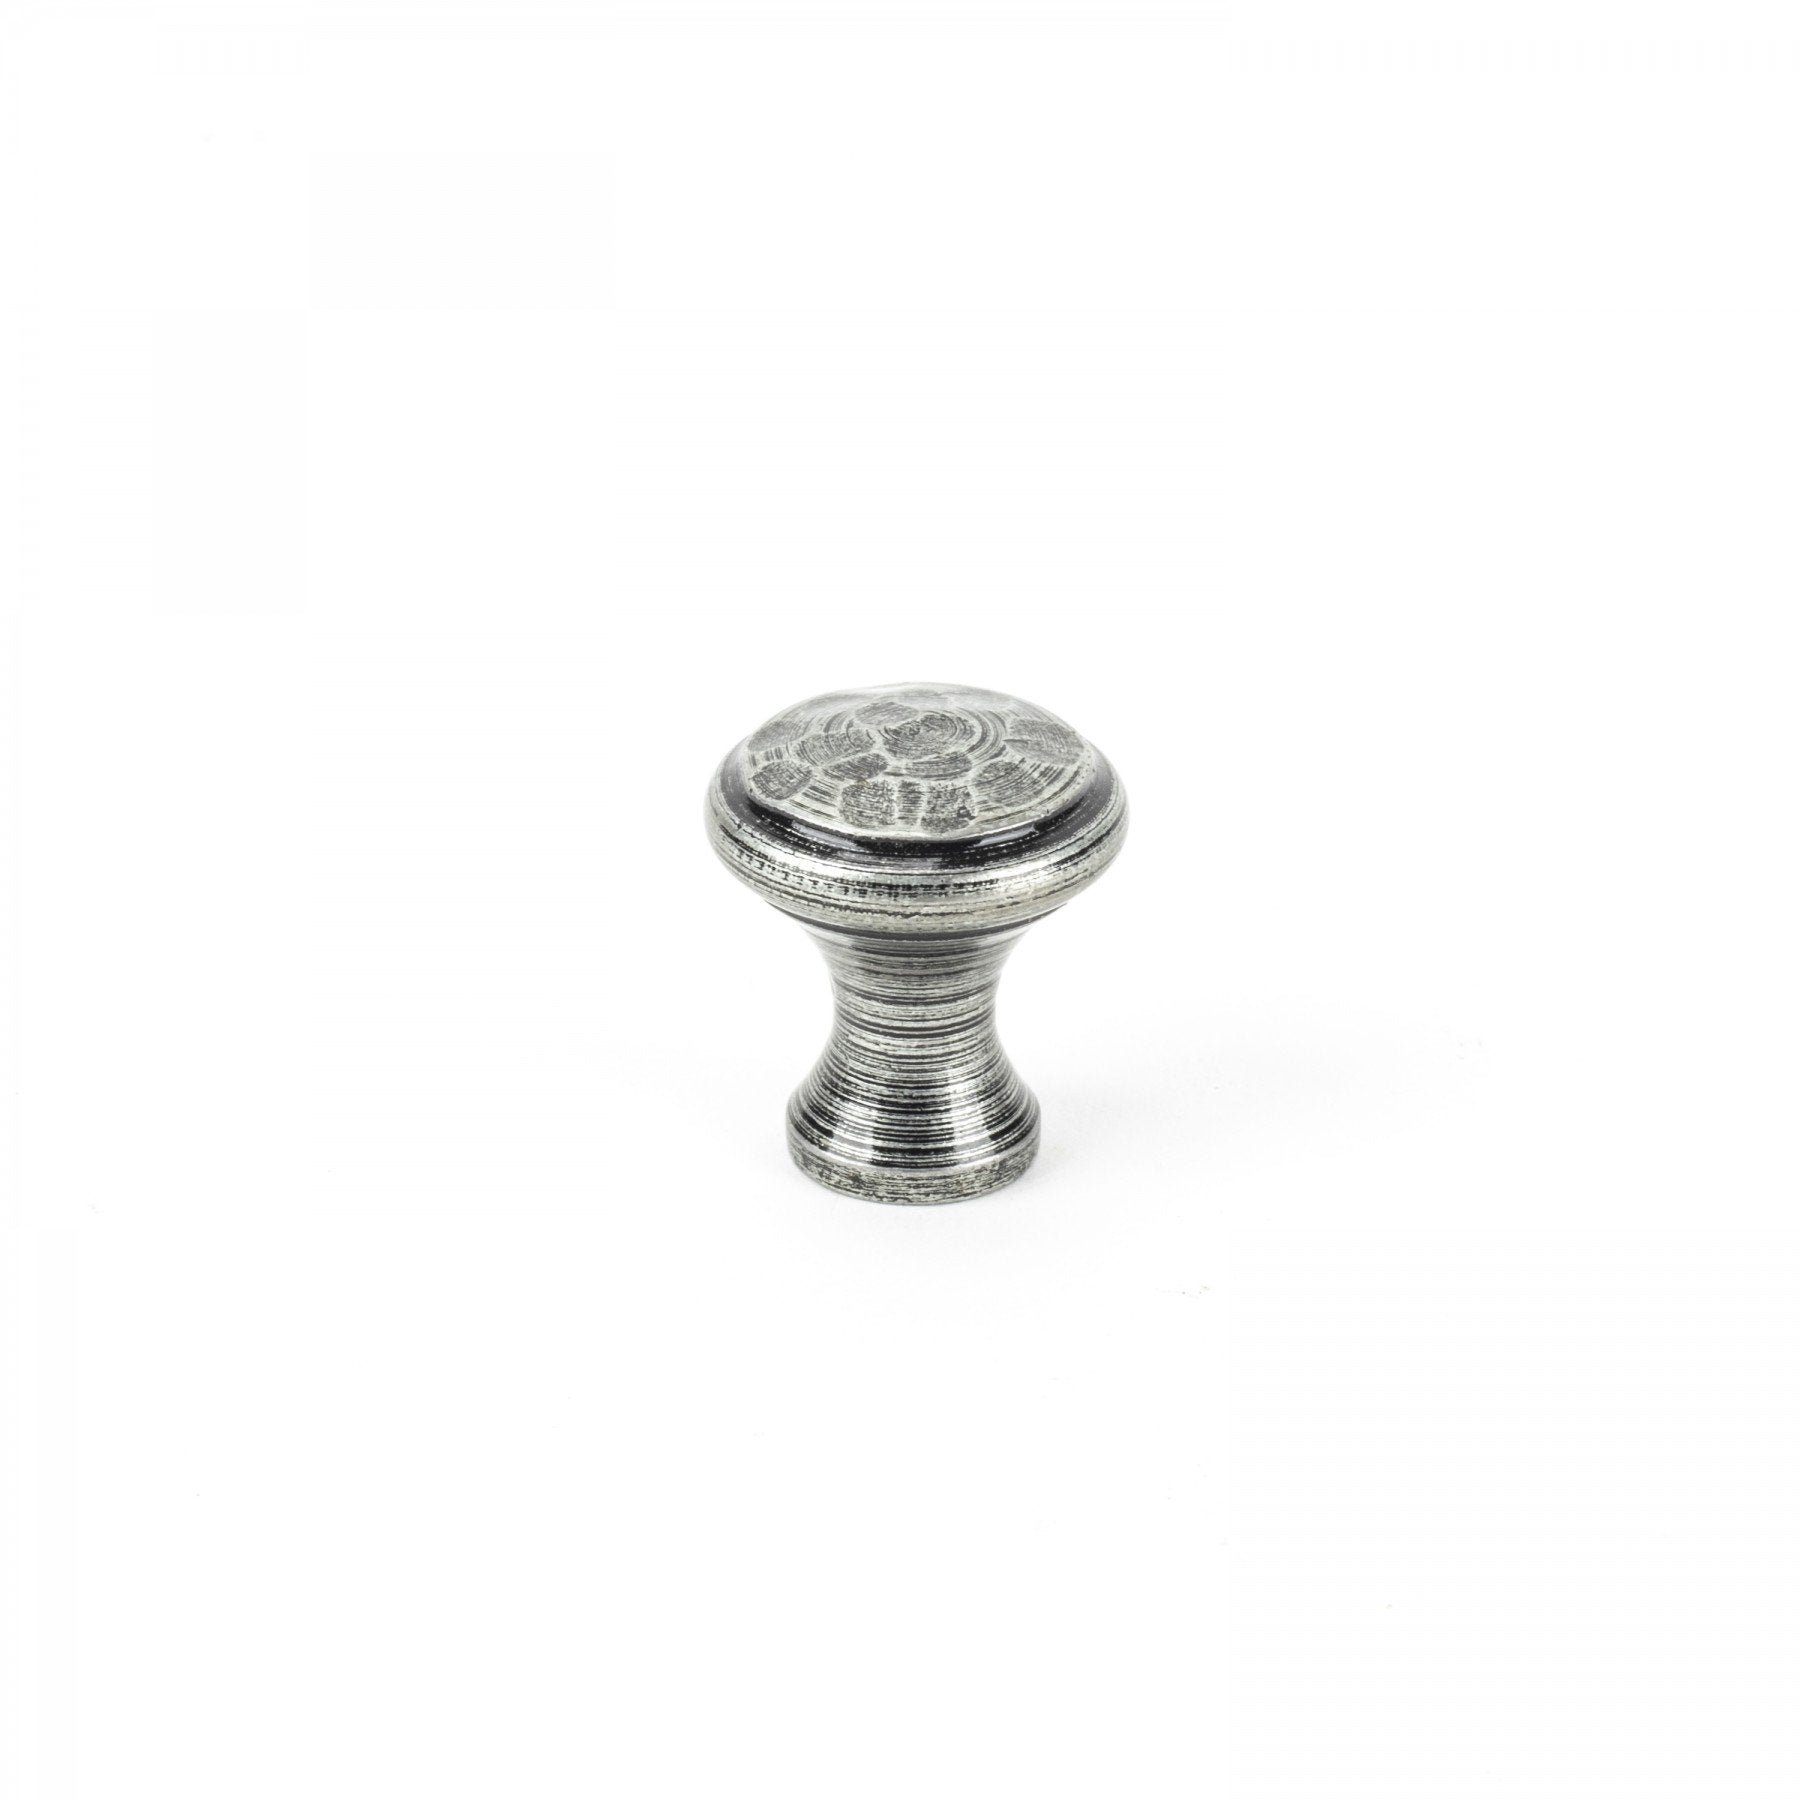 Pewter Beaten Cupboard Knob - Small